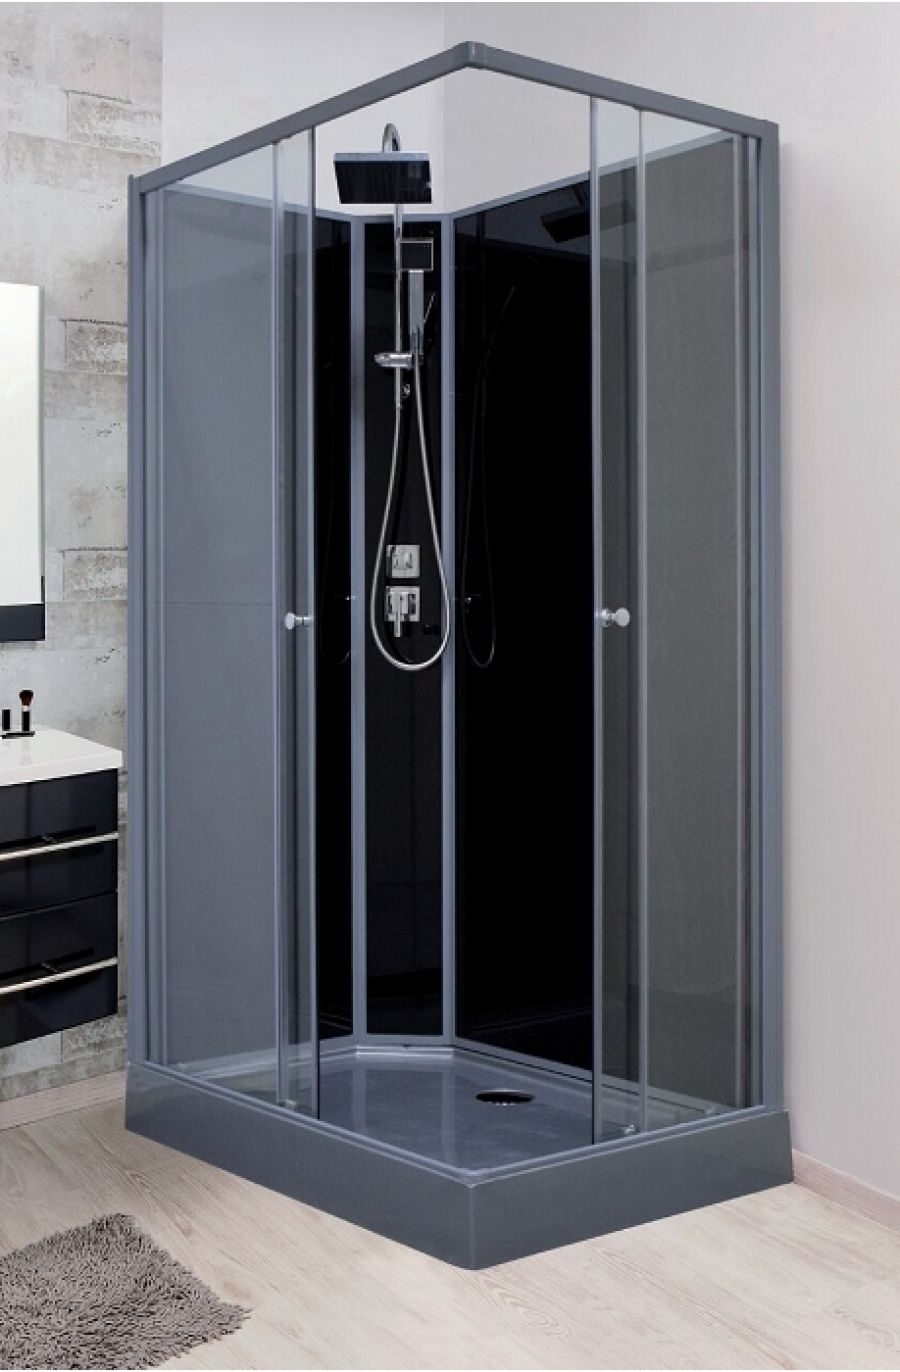 cabine de douche rectangulaire mayline 120x80 cmsanitaire. Black Bedroom Furniture Sets. Home Design Ideas